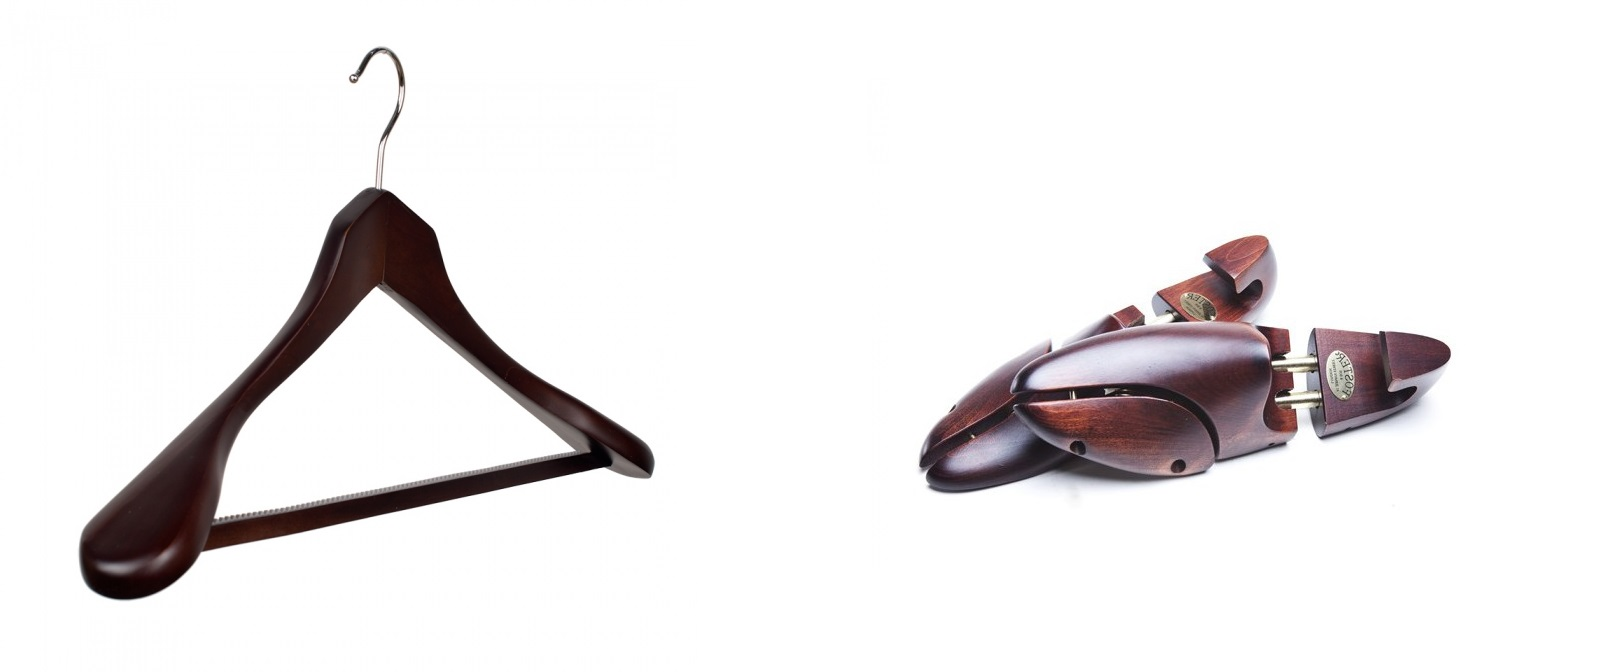 The Best Holiday Gifts for Men - Wooden hangers/ Shoe trees